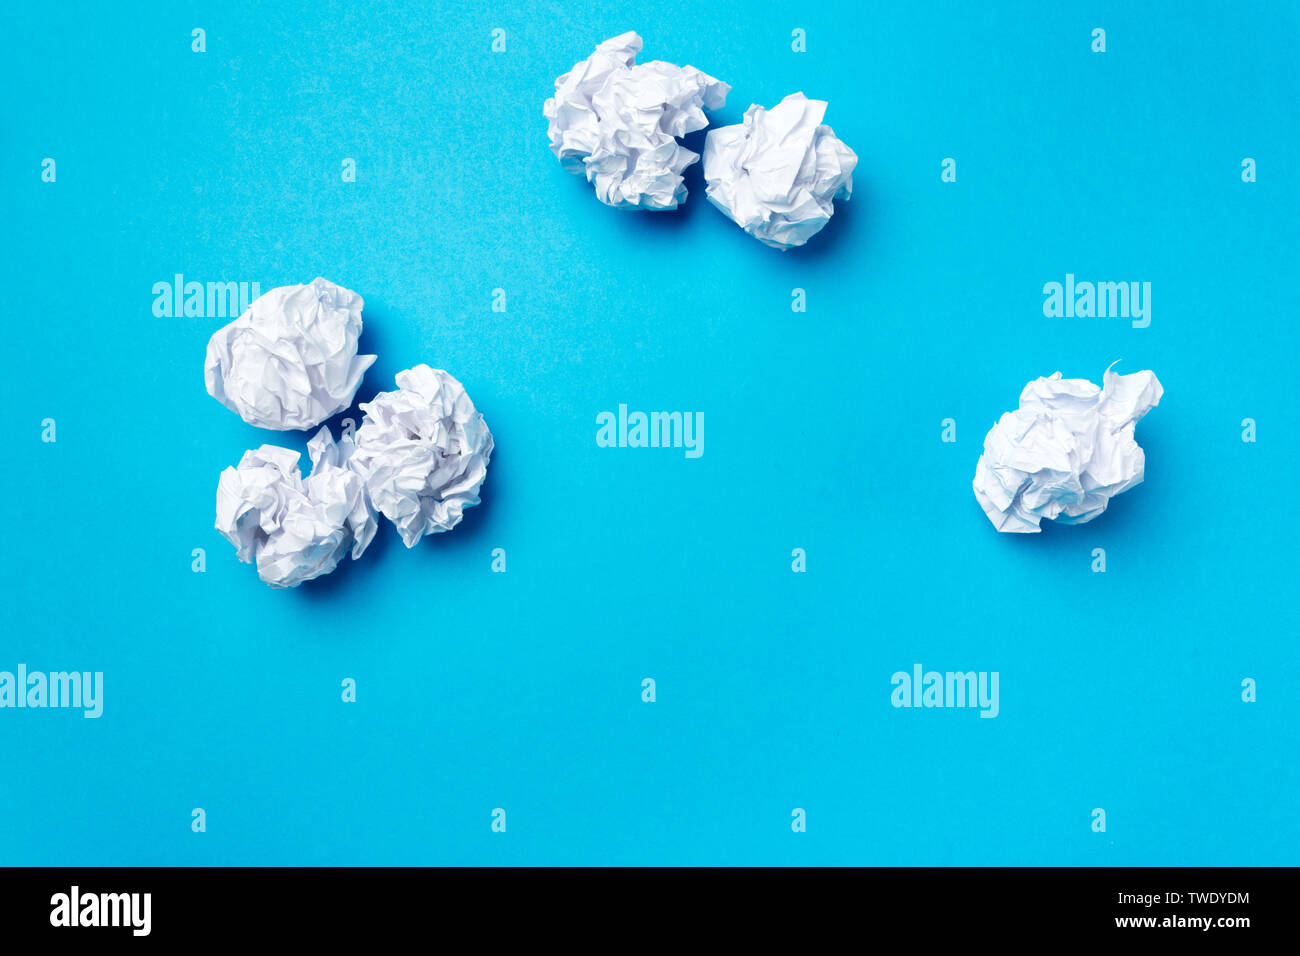 ball of white paper - Stock Image